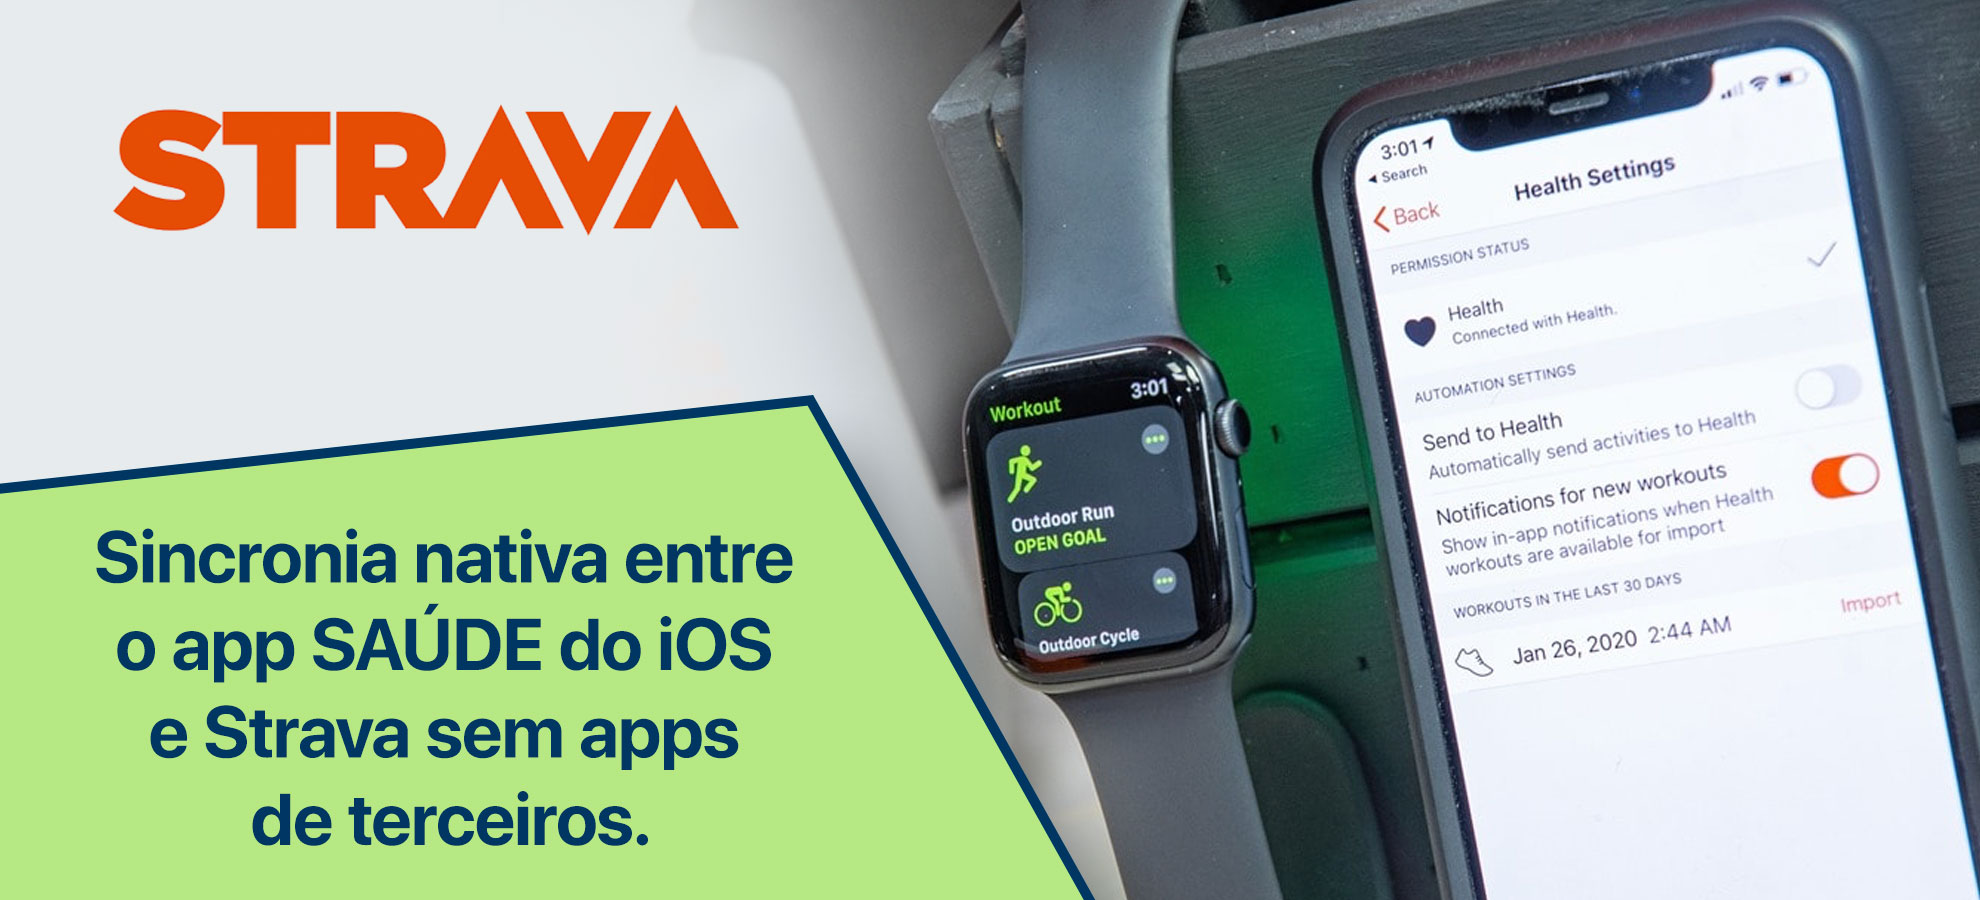 Sincronia nativa entre o app SAÚDE do iOS e Strava sem apps de terceiros